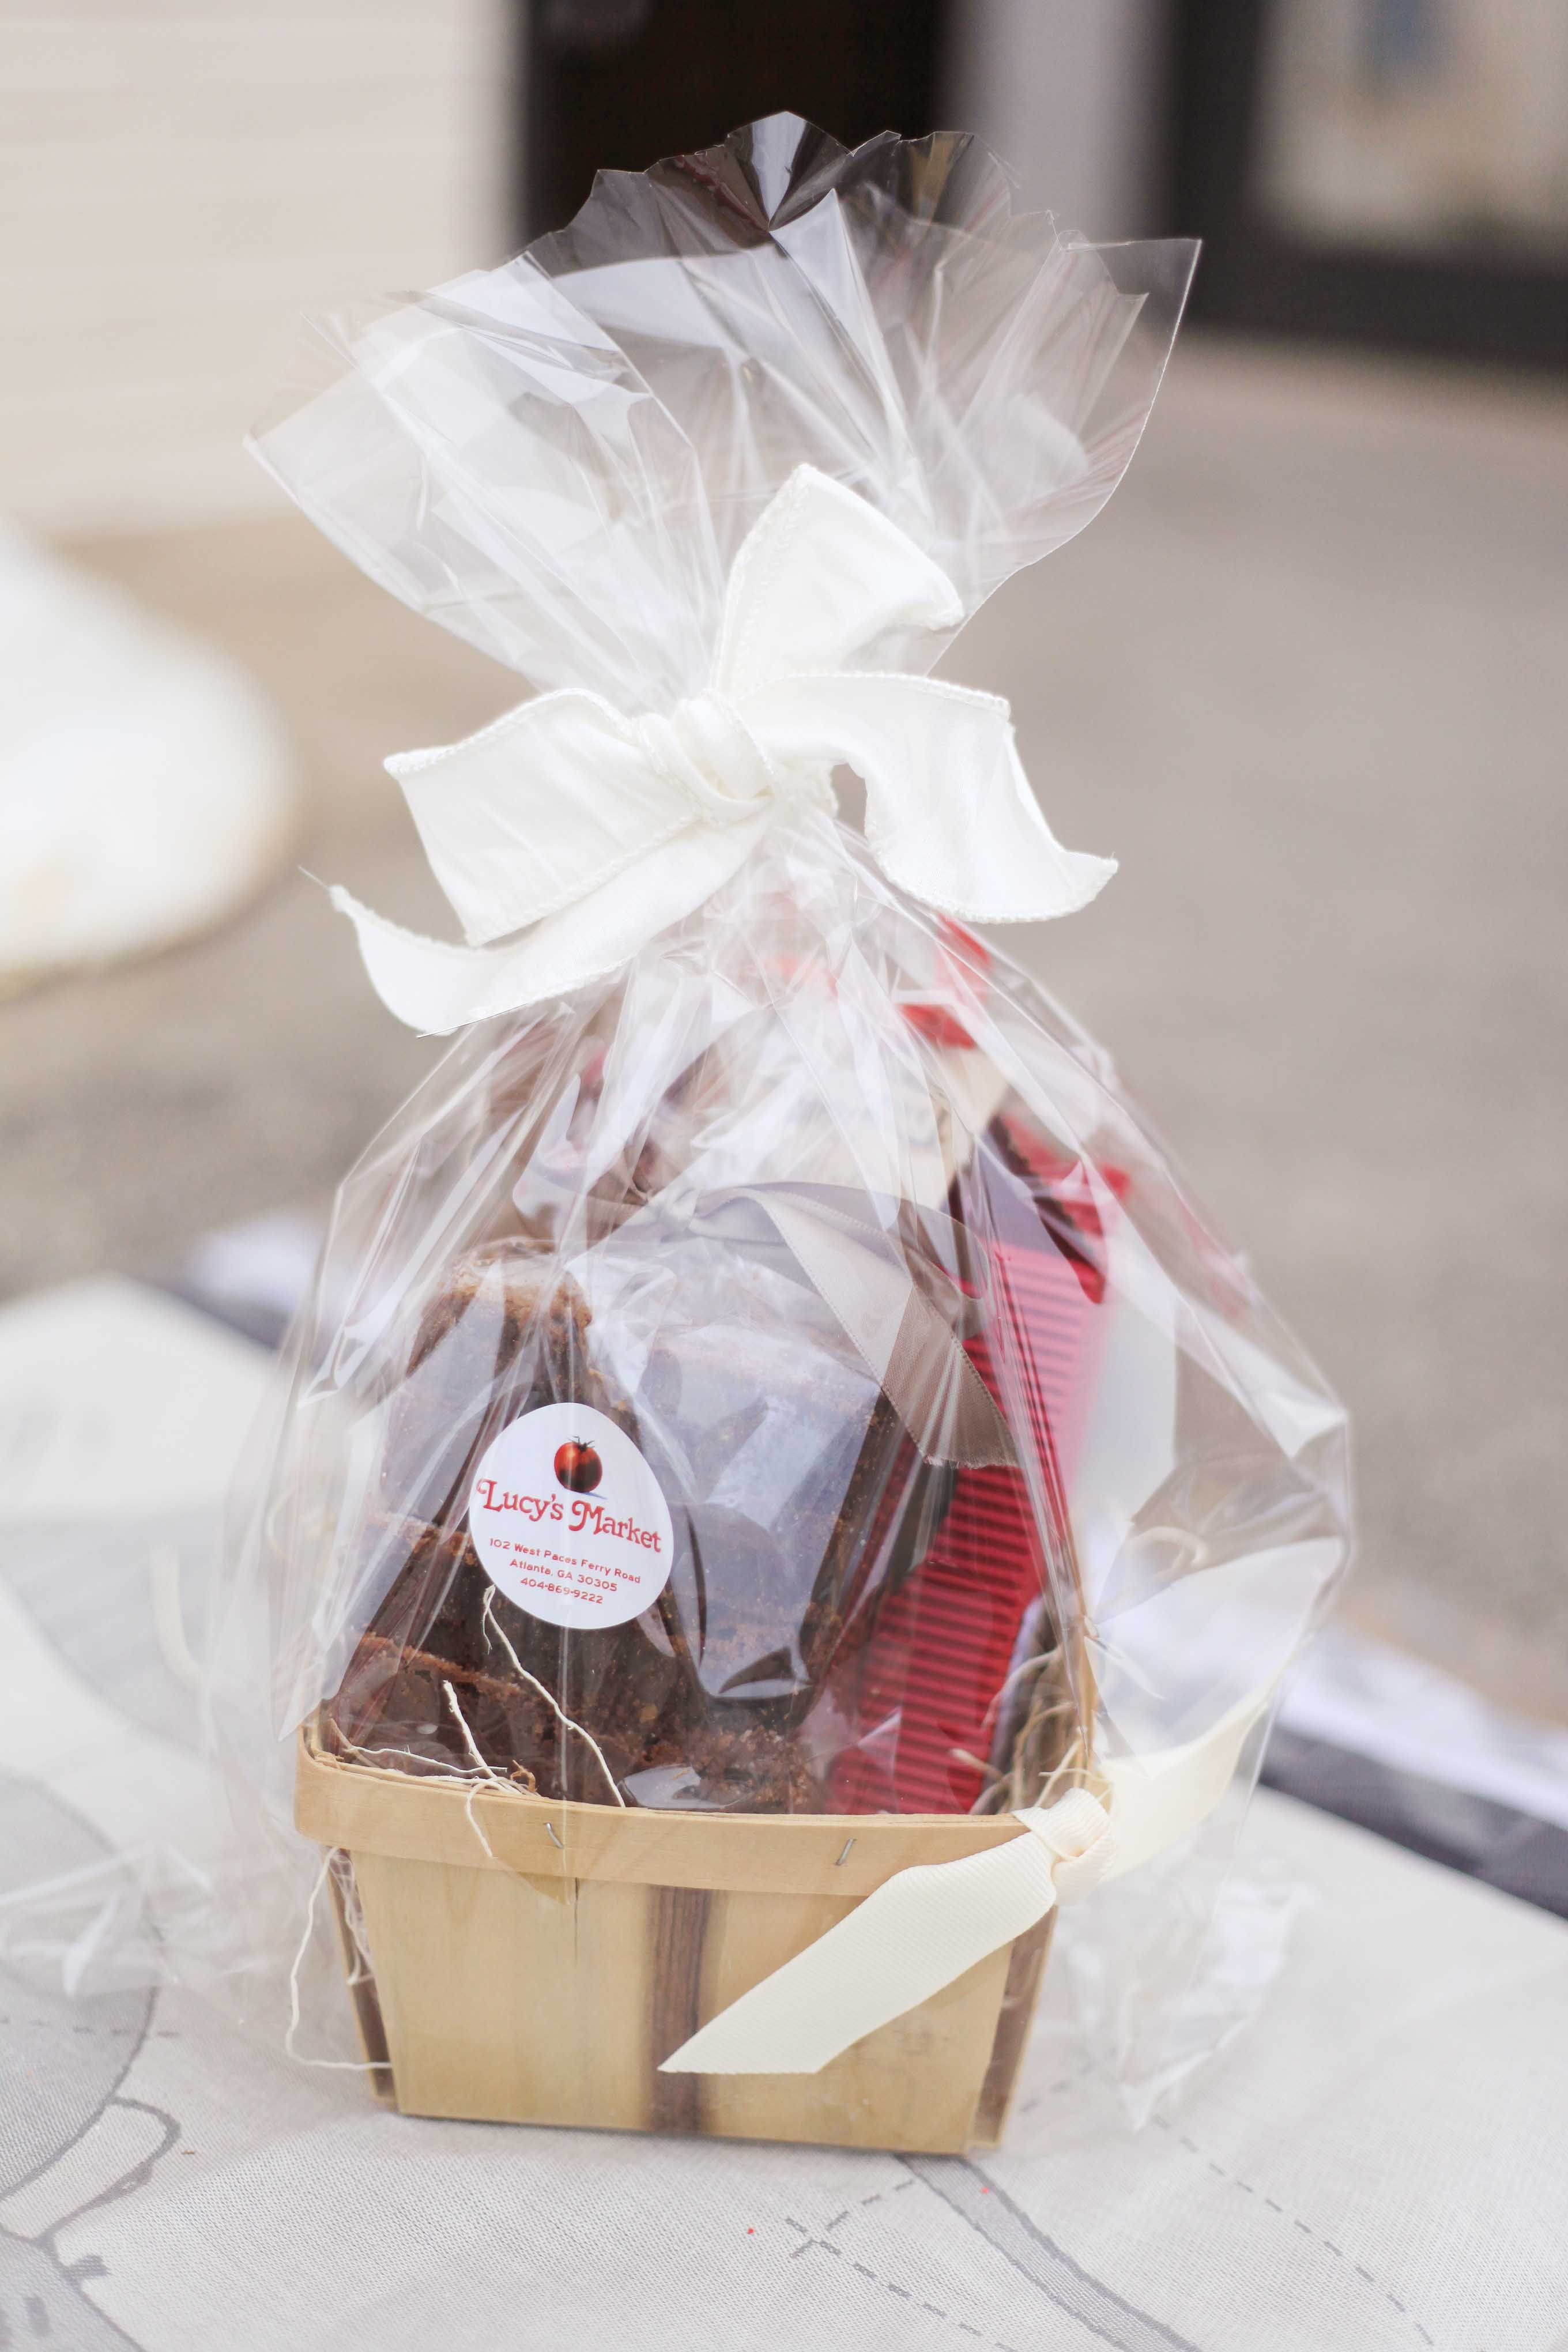 An adorable mini gift basket filled with truffle brownies and shortbread cookies! Too cute!